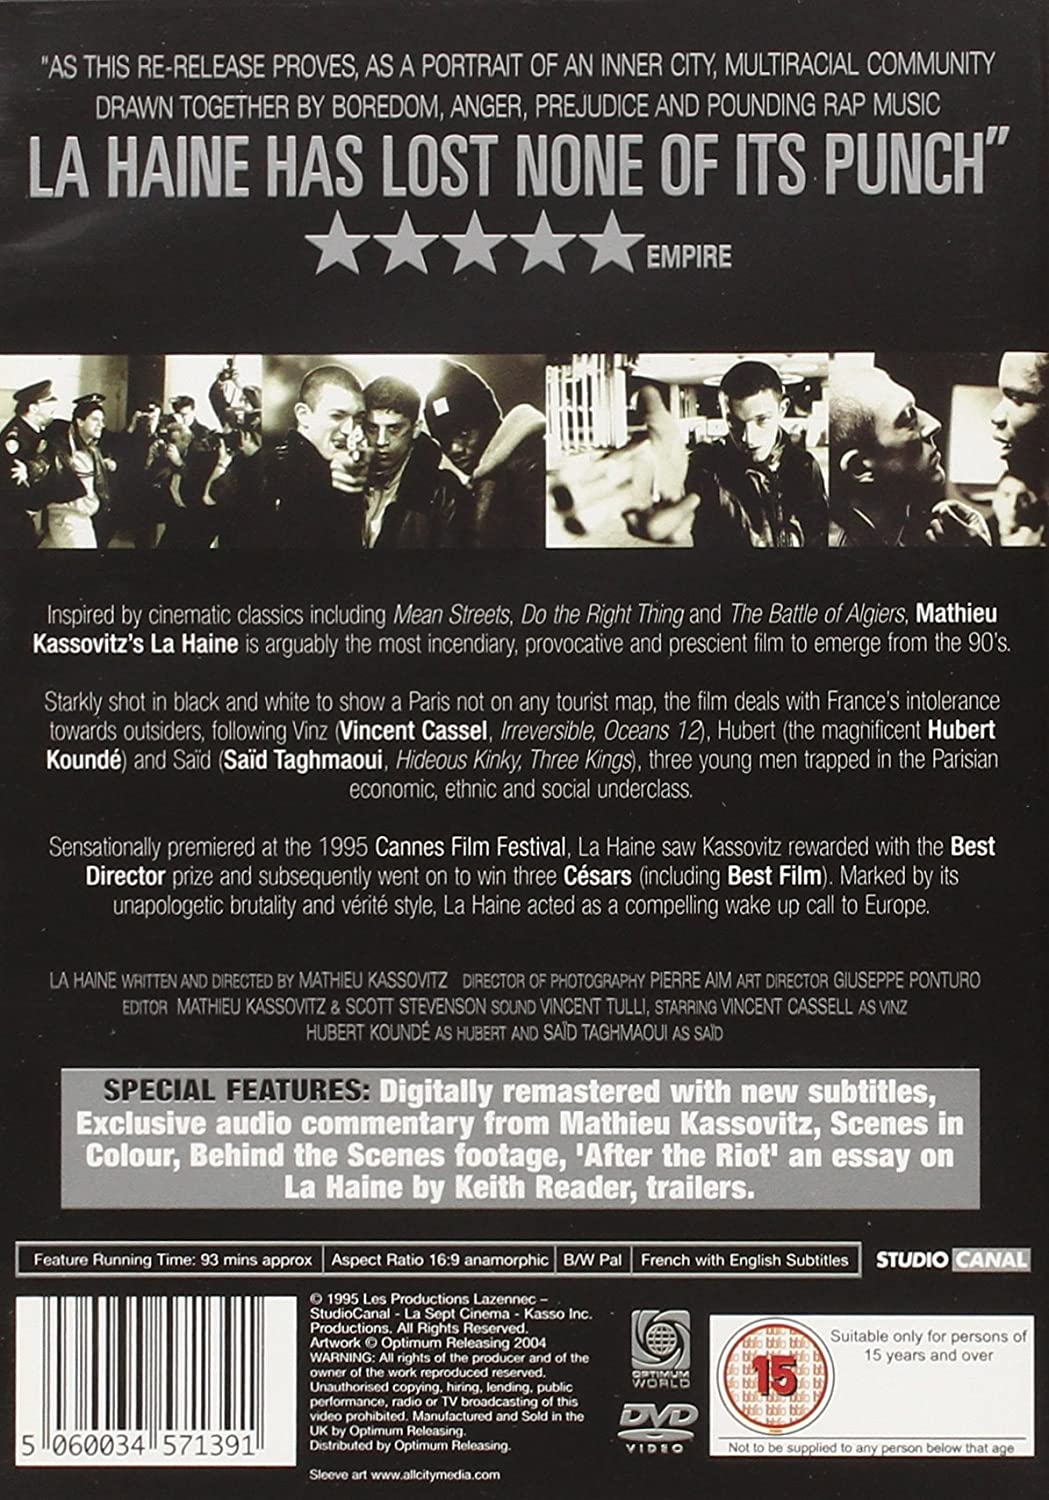 amazon co jp la haine dvd import dvd atilde atilde atilde atilde frac atilde not atilde curren vincent amazon co jp la haine dvd import dvdatilde131 atilde131150atilde131 atilde131frac14atilde131notatilde130curren vincent cassel hubert koundatildecopy saatildemacrd taghmaoui abdel ahmed ghili solo joseph momo hatildecopyloatildemacrse rauth